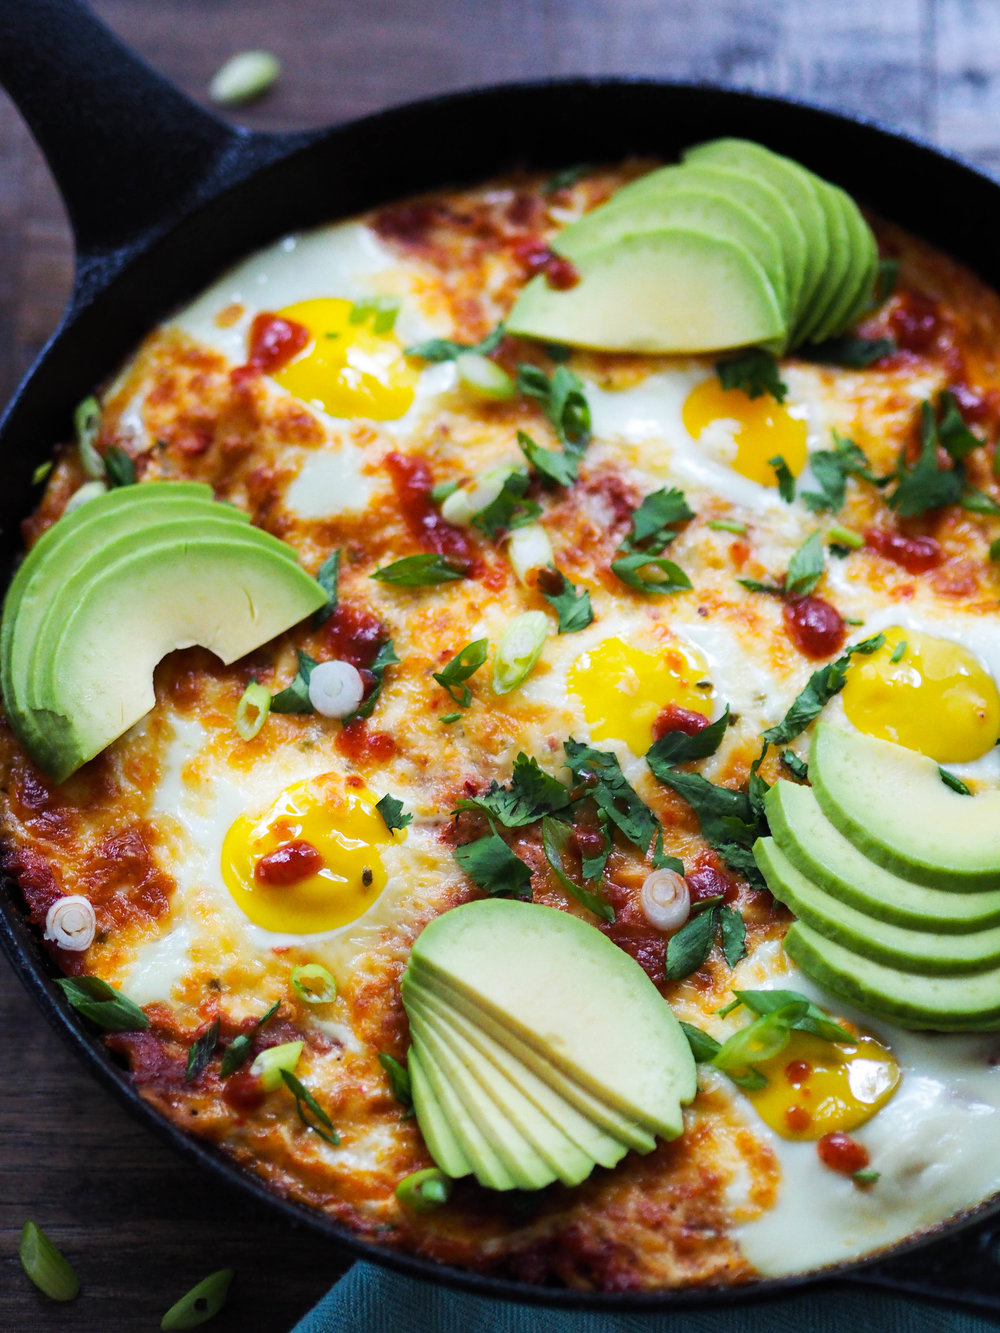 spicy-baked-eggs-and-tortillas-6.jpg